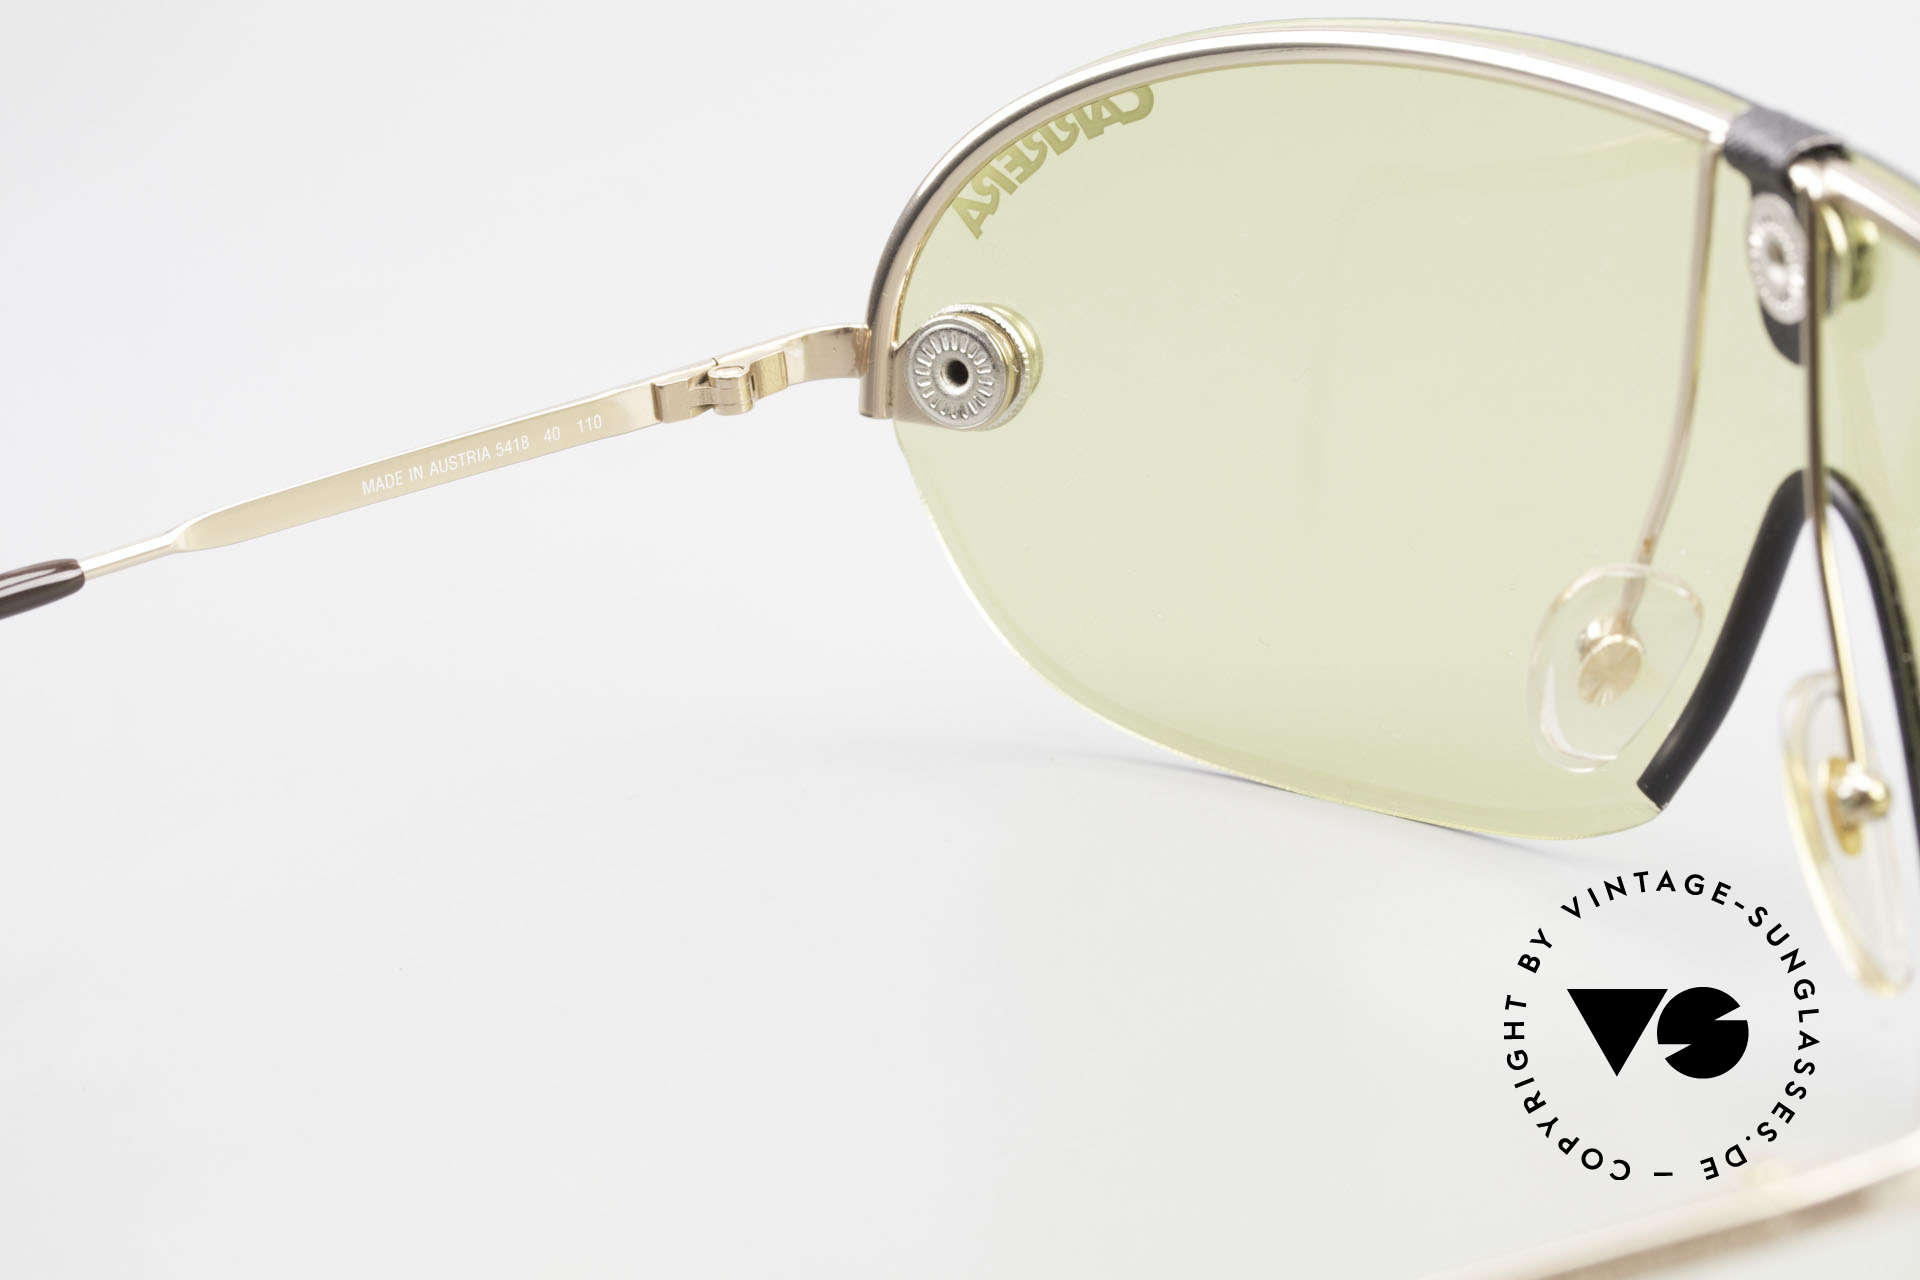 Carrera 5418 All Weather Sunglasses Polar, new old stock (like all our rare vintage sports sunglasses), Made for Men